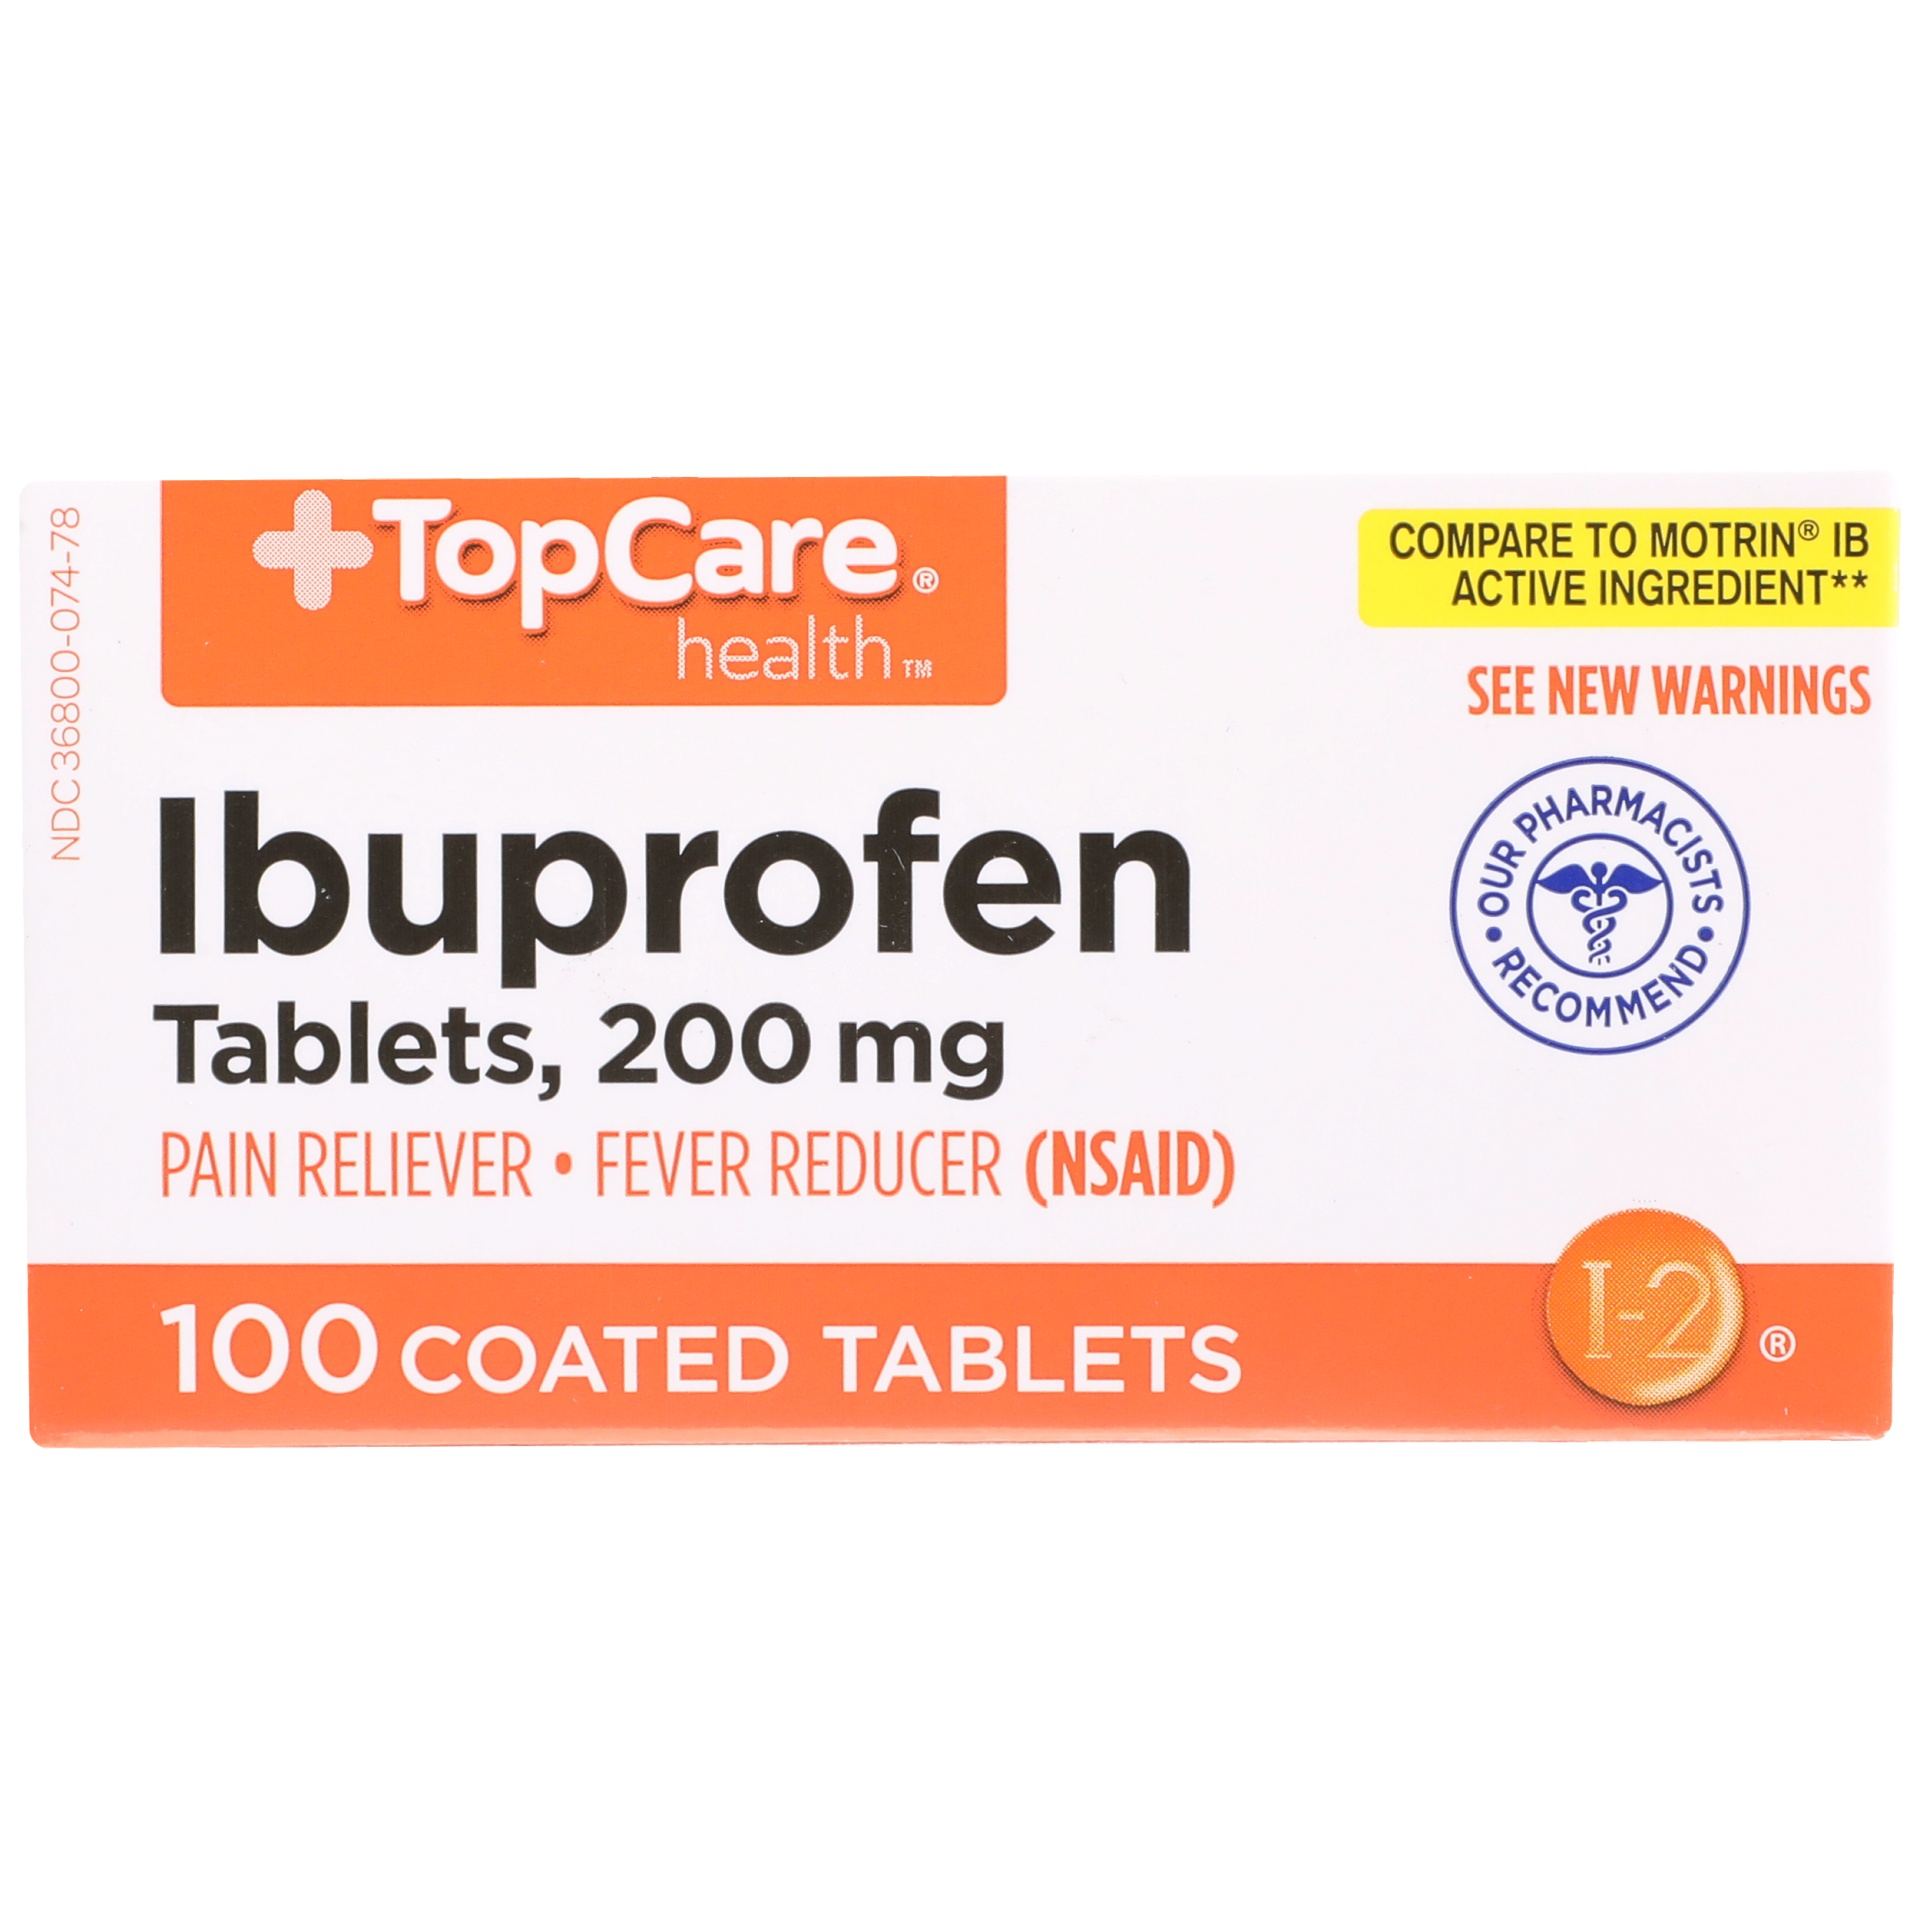 slide 1 of 6, Topcare 200mg Ibuprofen Coated Tablets ,